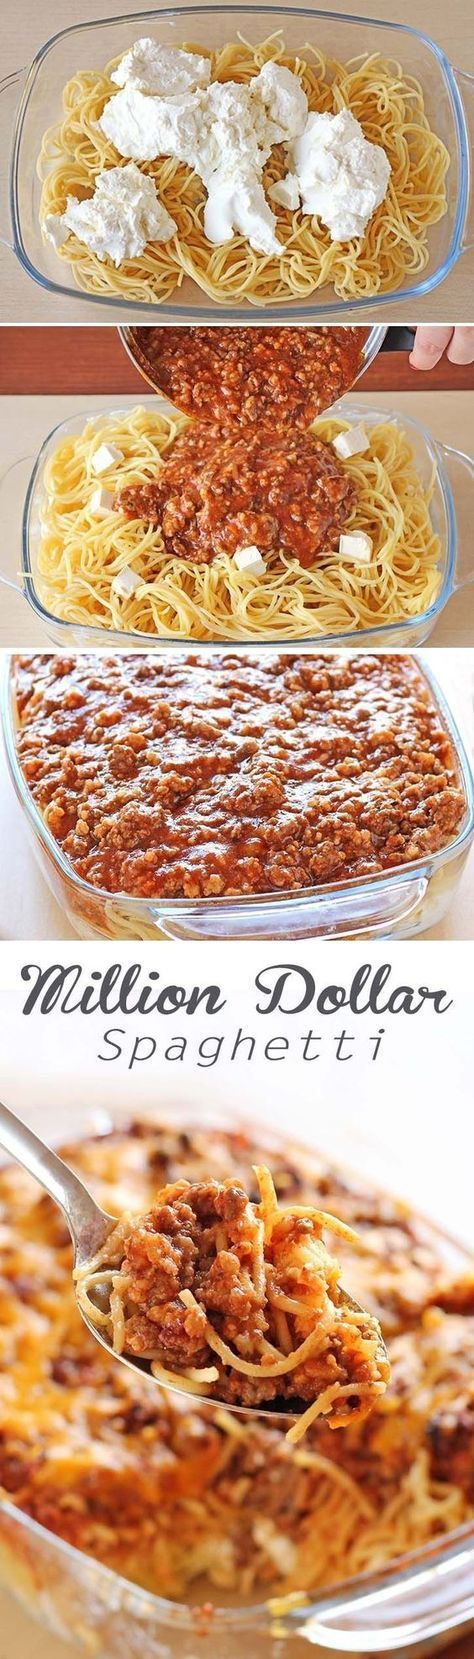 Spaghetti, spaghetti sauce, beef and cream cheese mixture